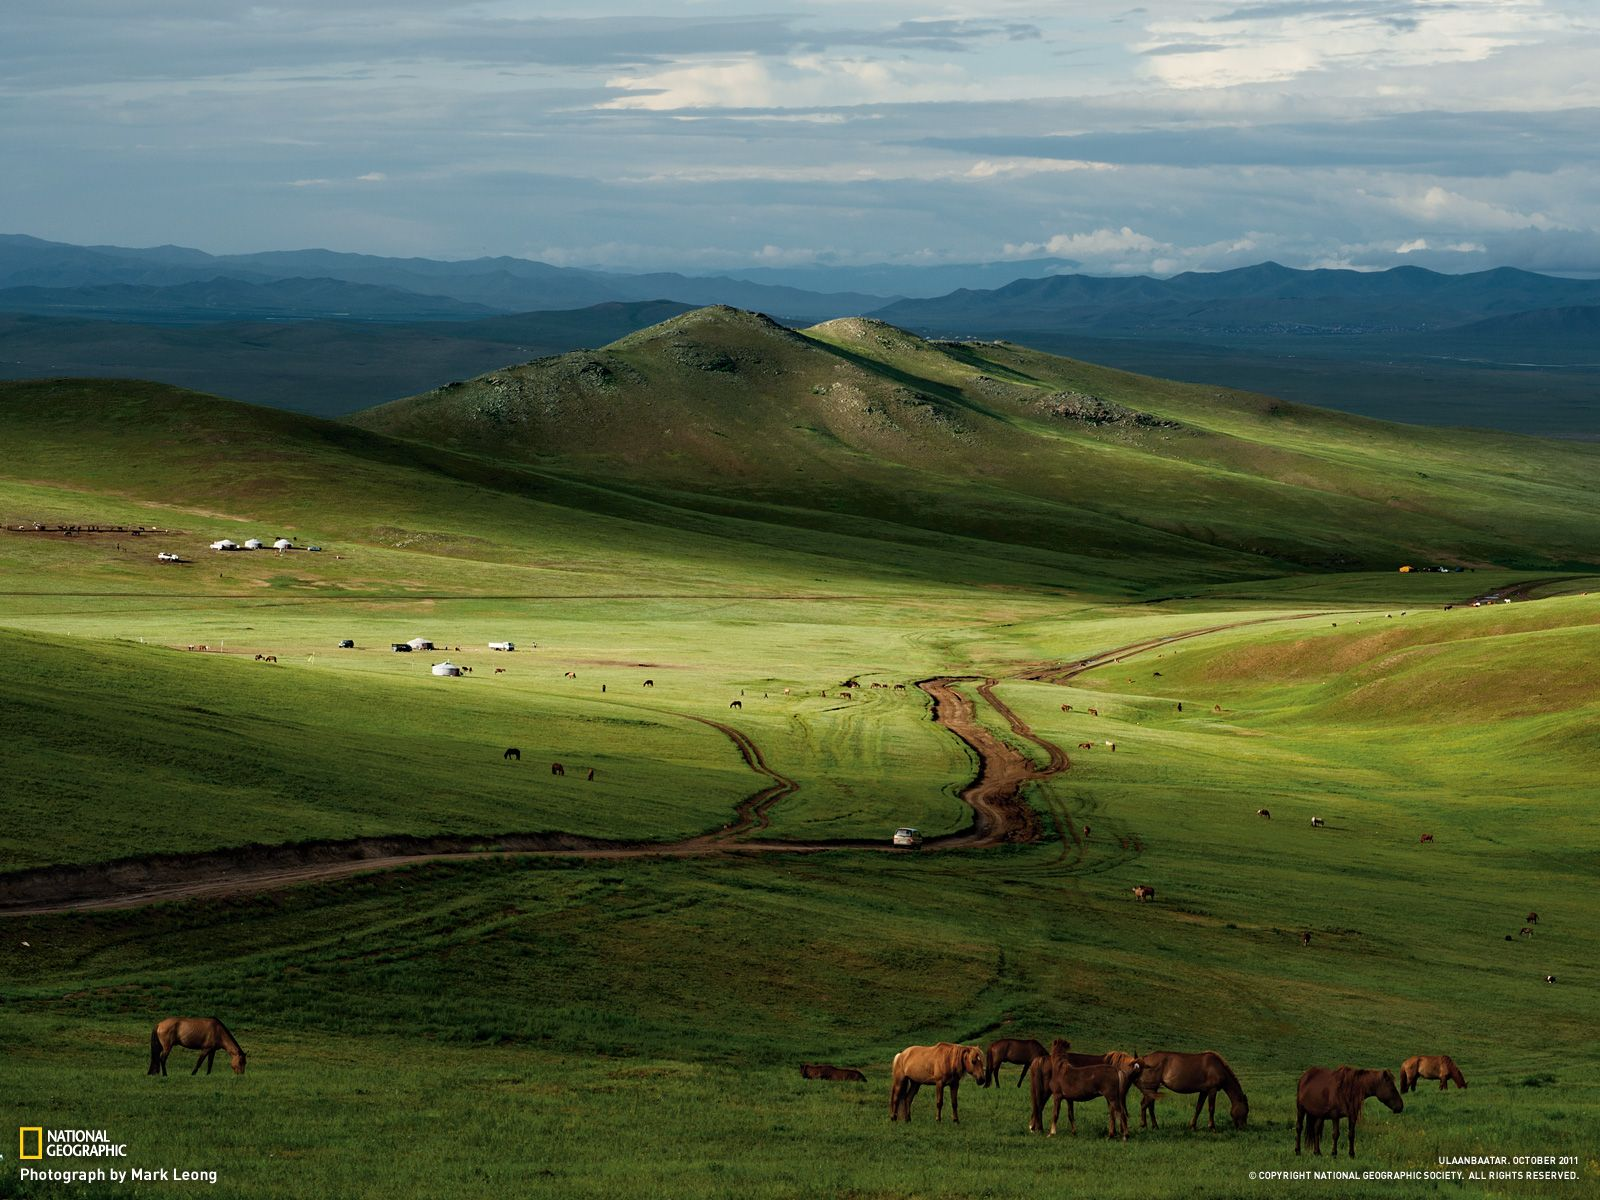 Beautiful Wallpaper Horse National Geographic - 103a67097e3f4e119095b3ce03cfd3b3  Picture_206632.jpg